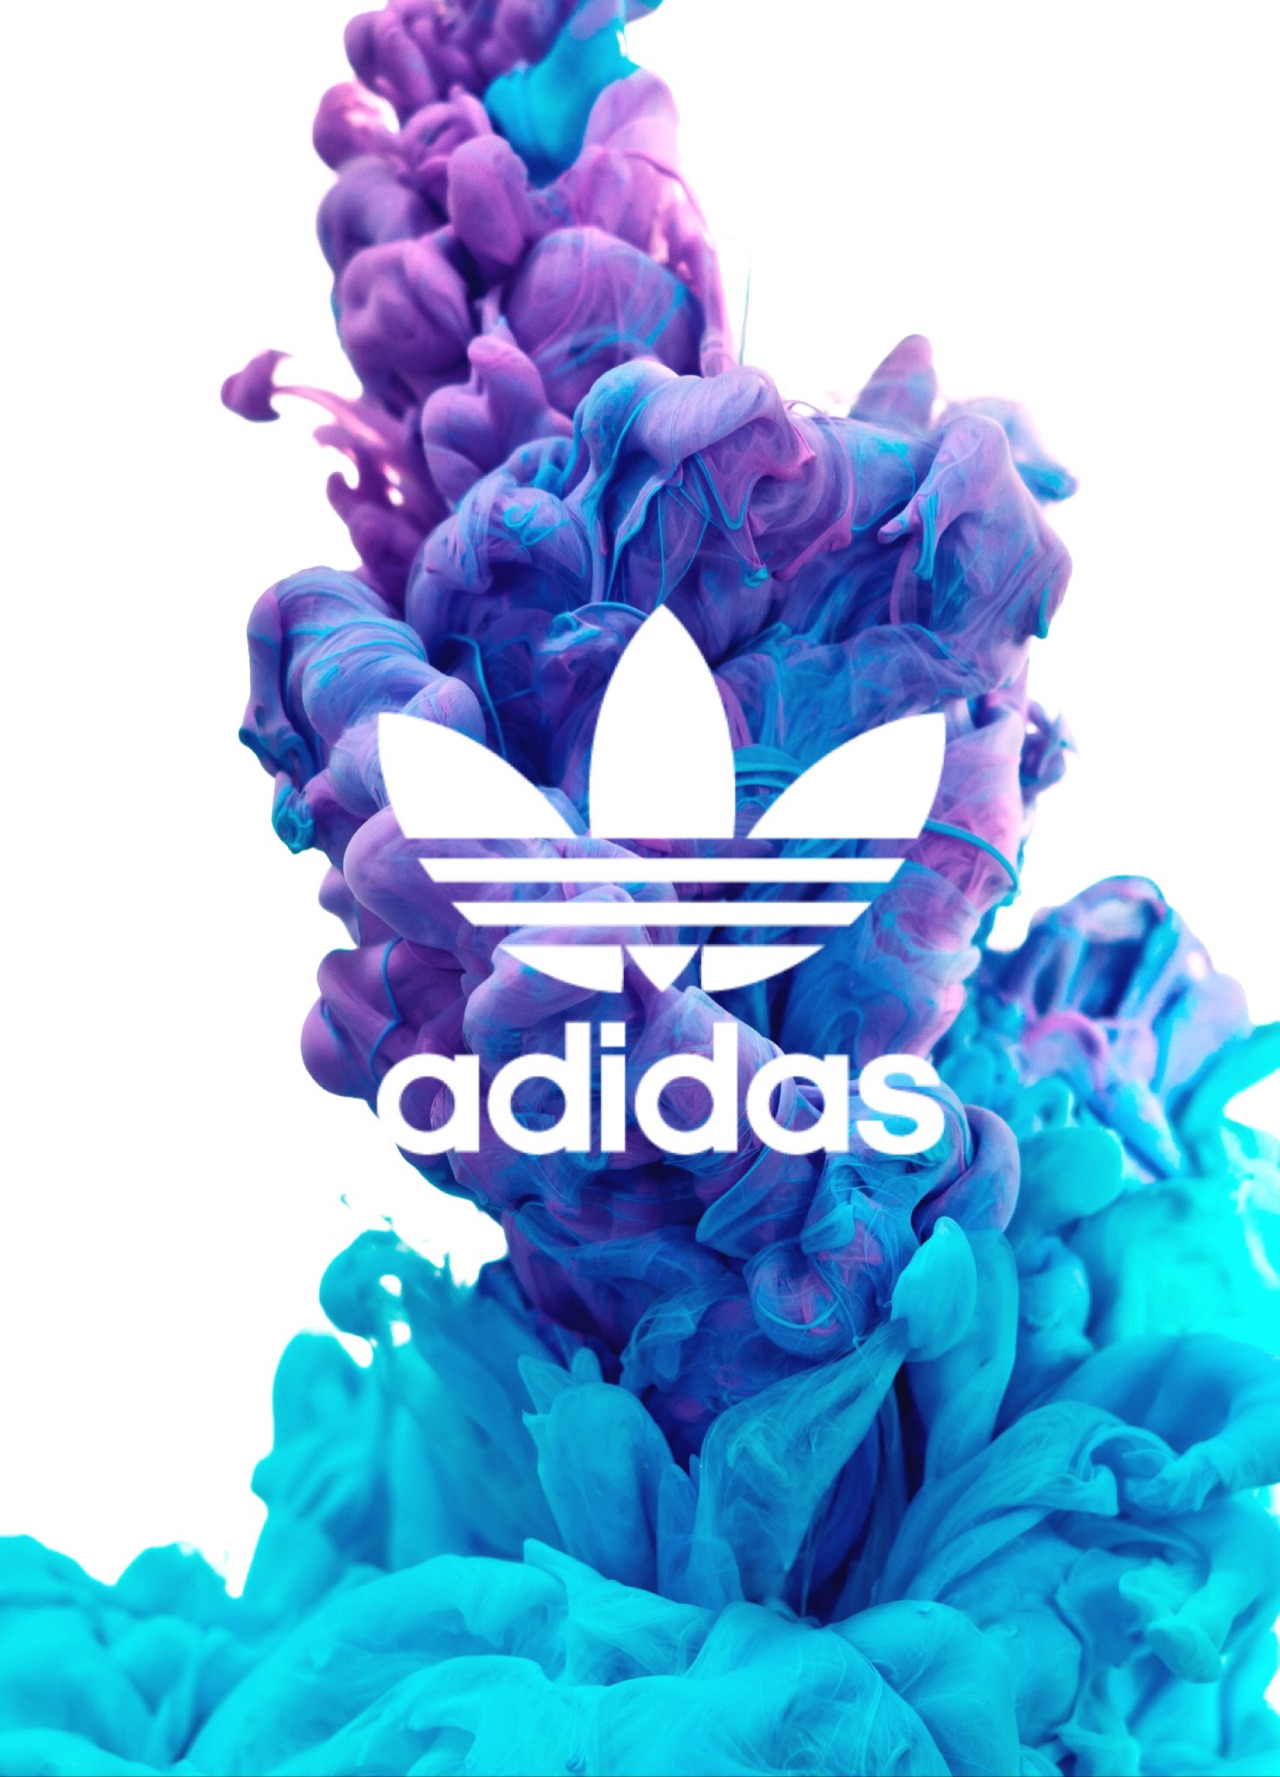 Adidas-Photo-wallpaper-wp423456